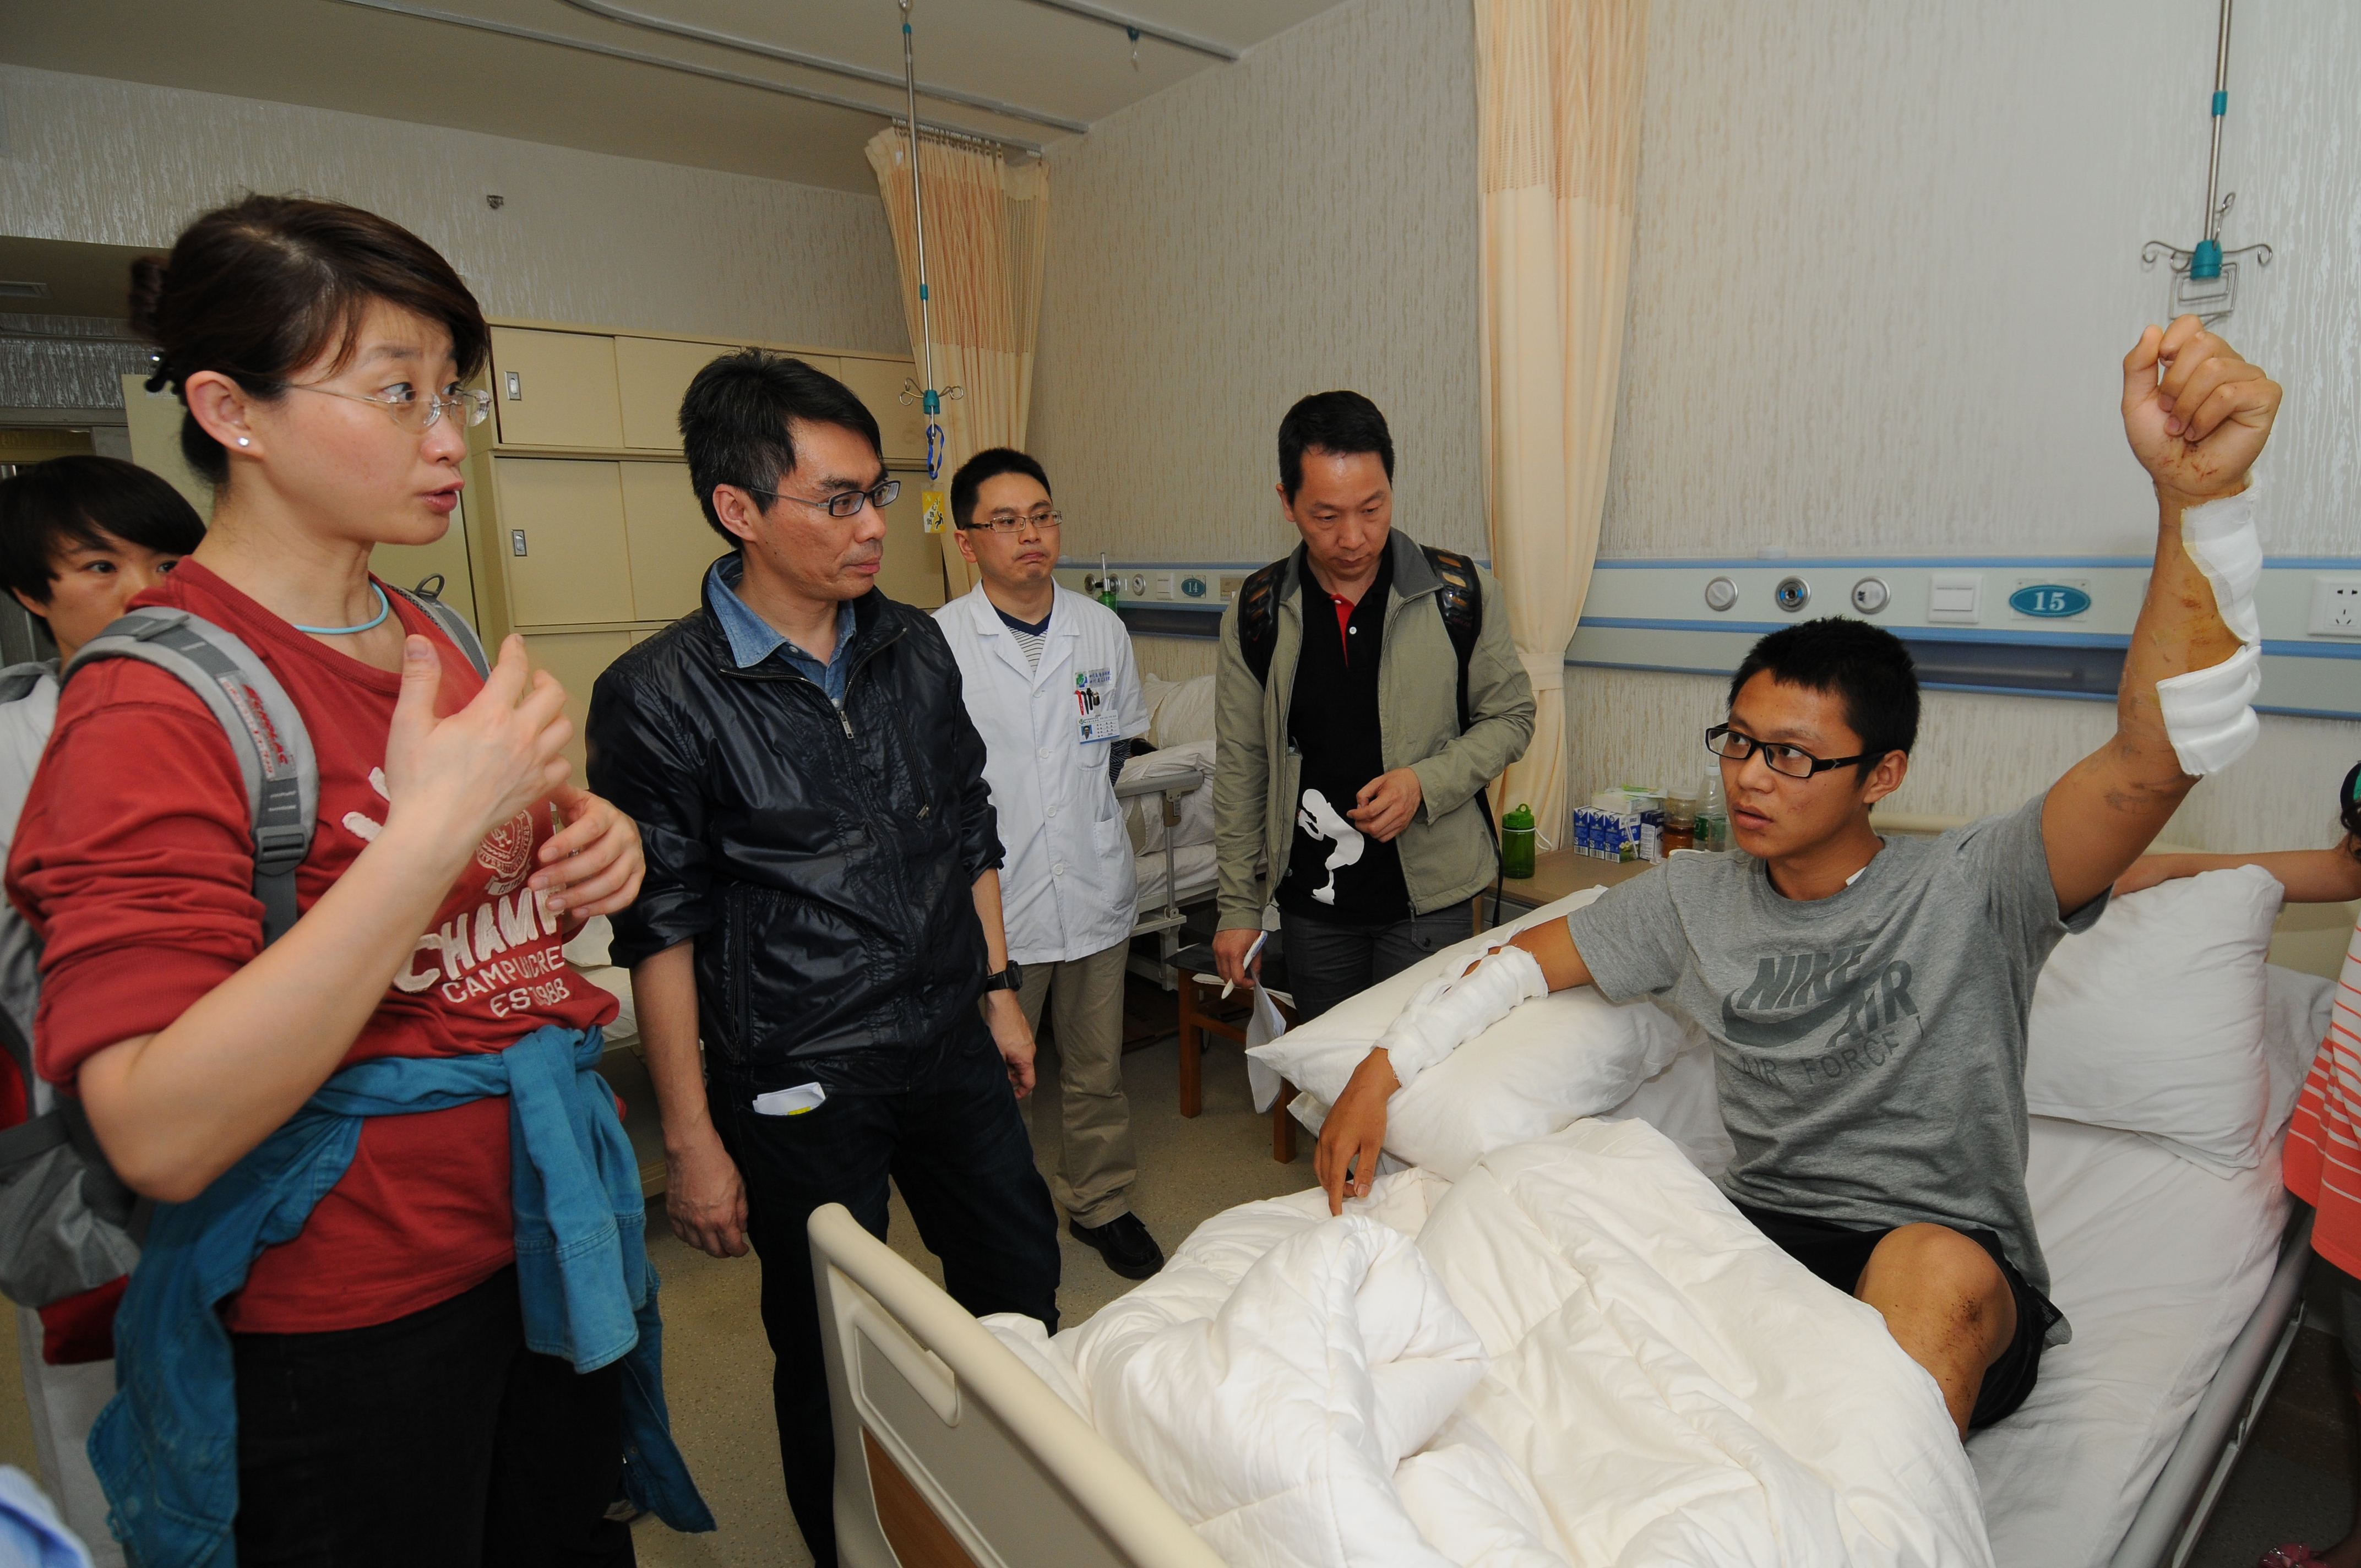 r. LAW Sheung Wai provided rehabilitative service to amputees of Sichuan earthquake